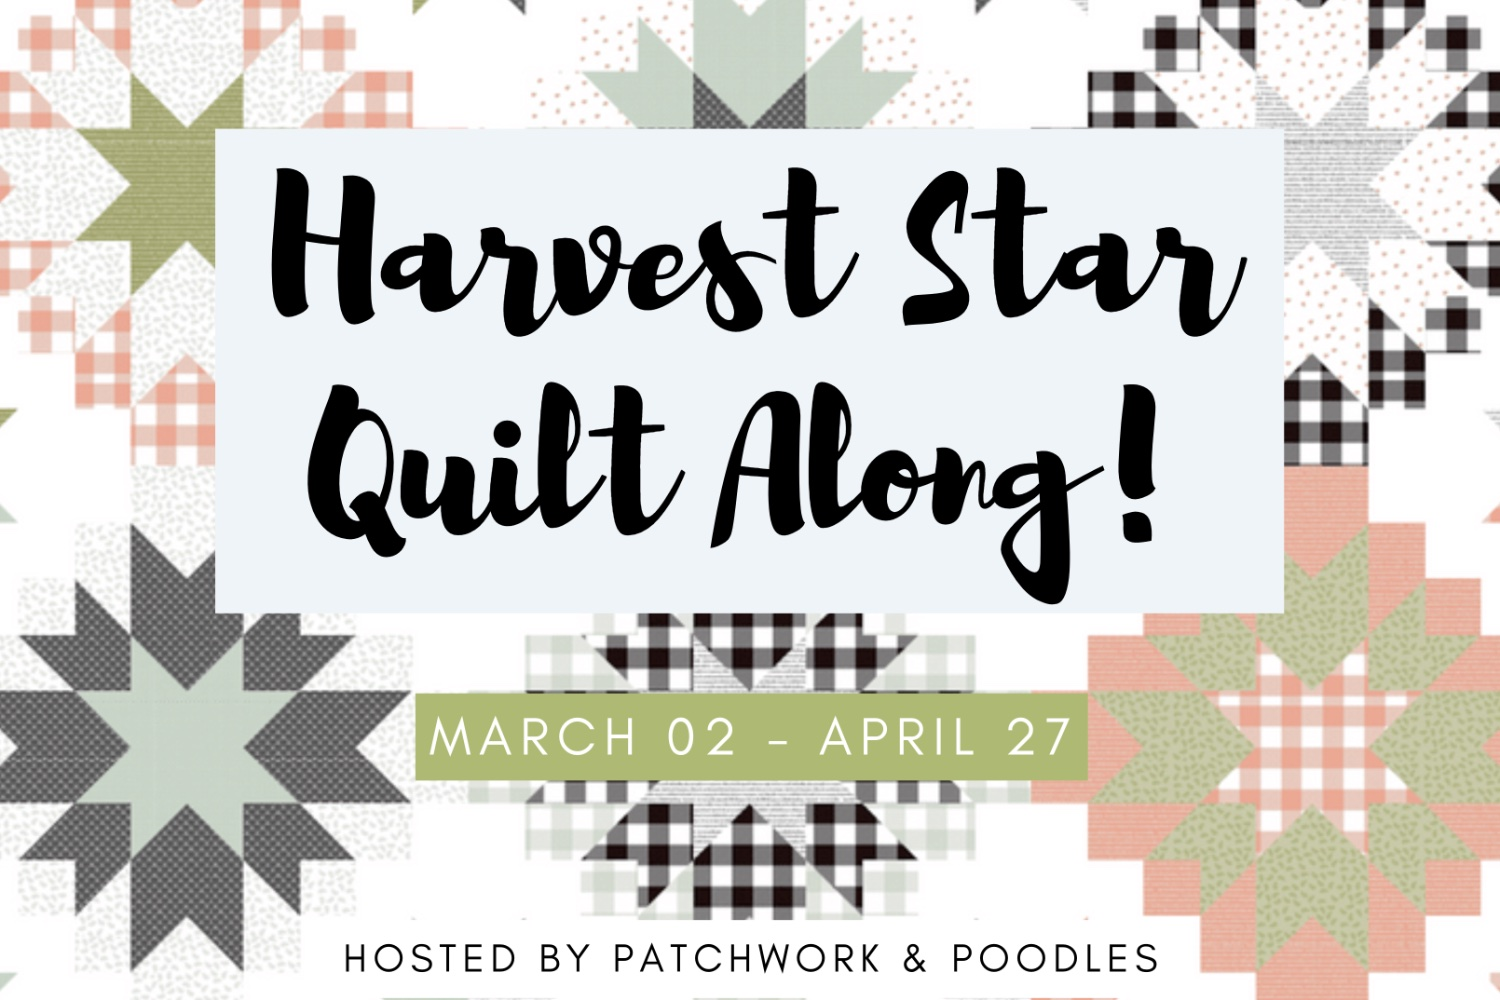 Harvest Star Quilt Along!